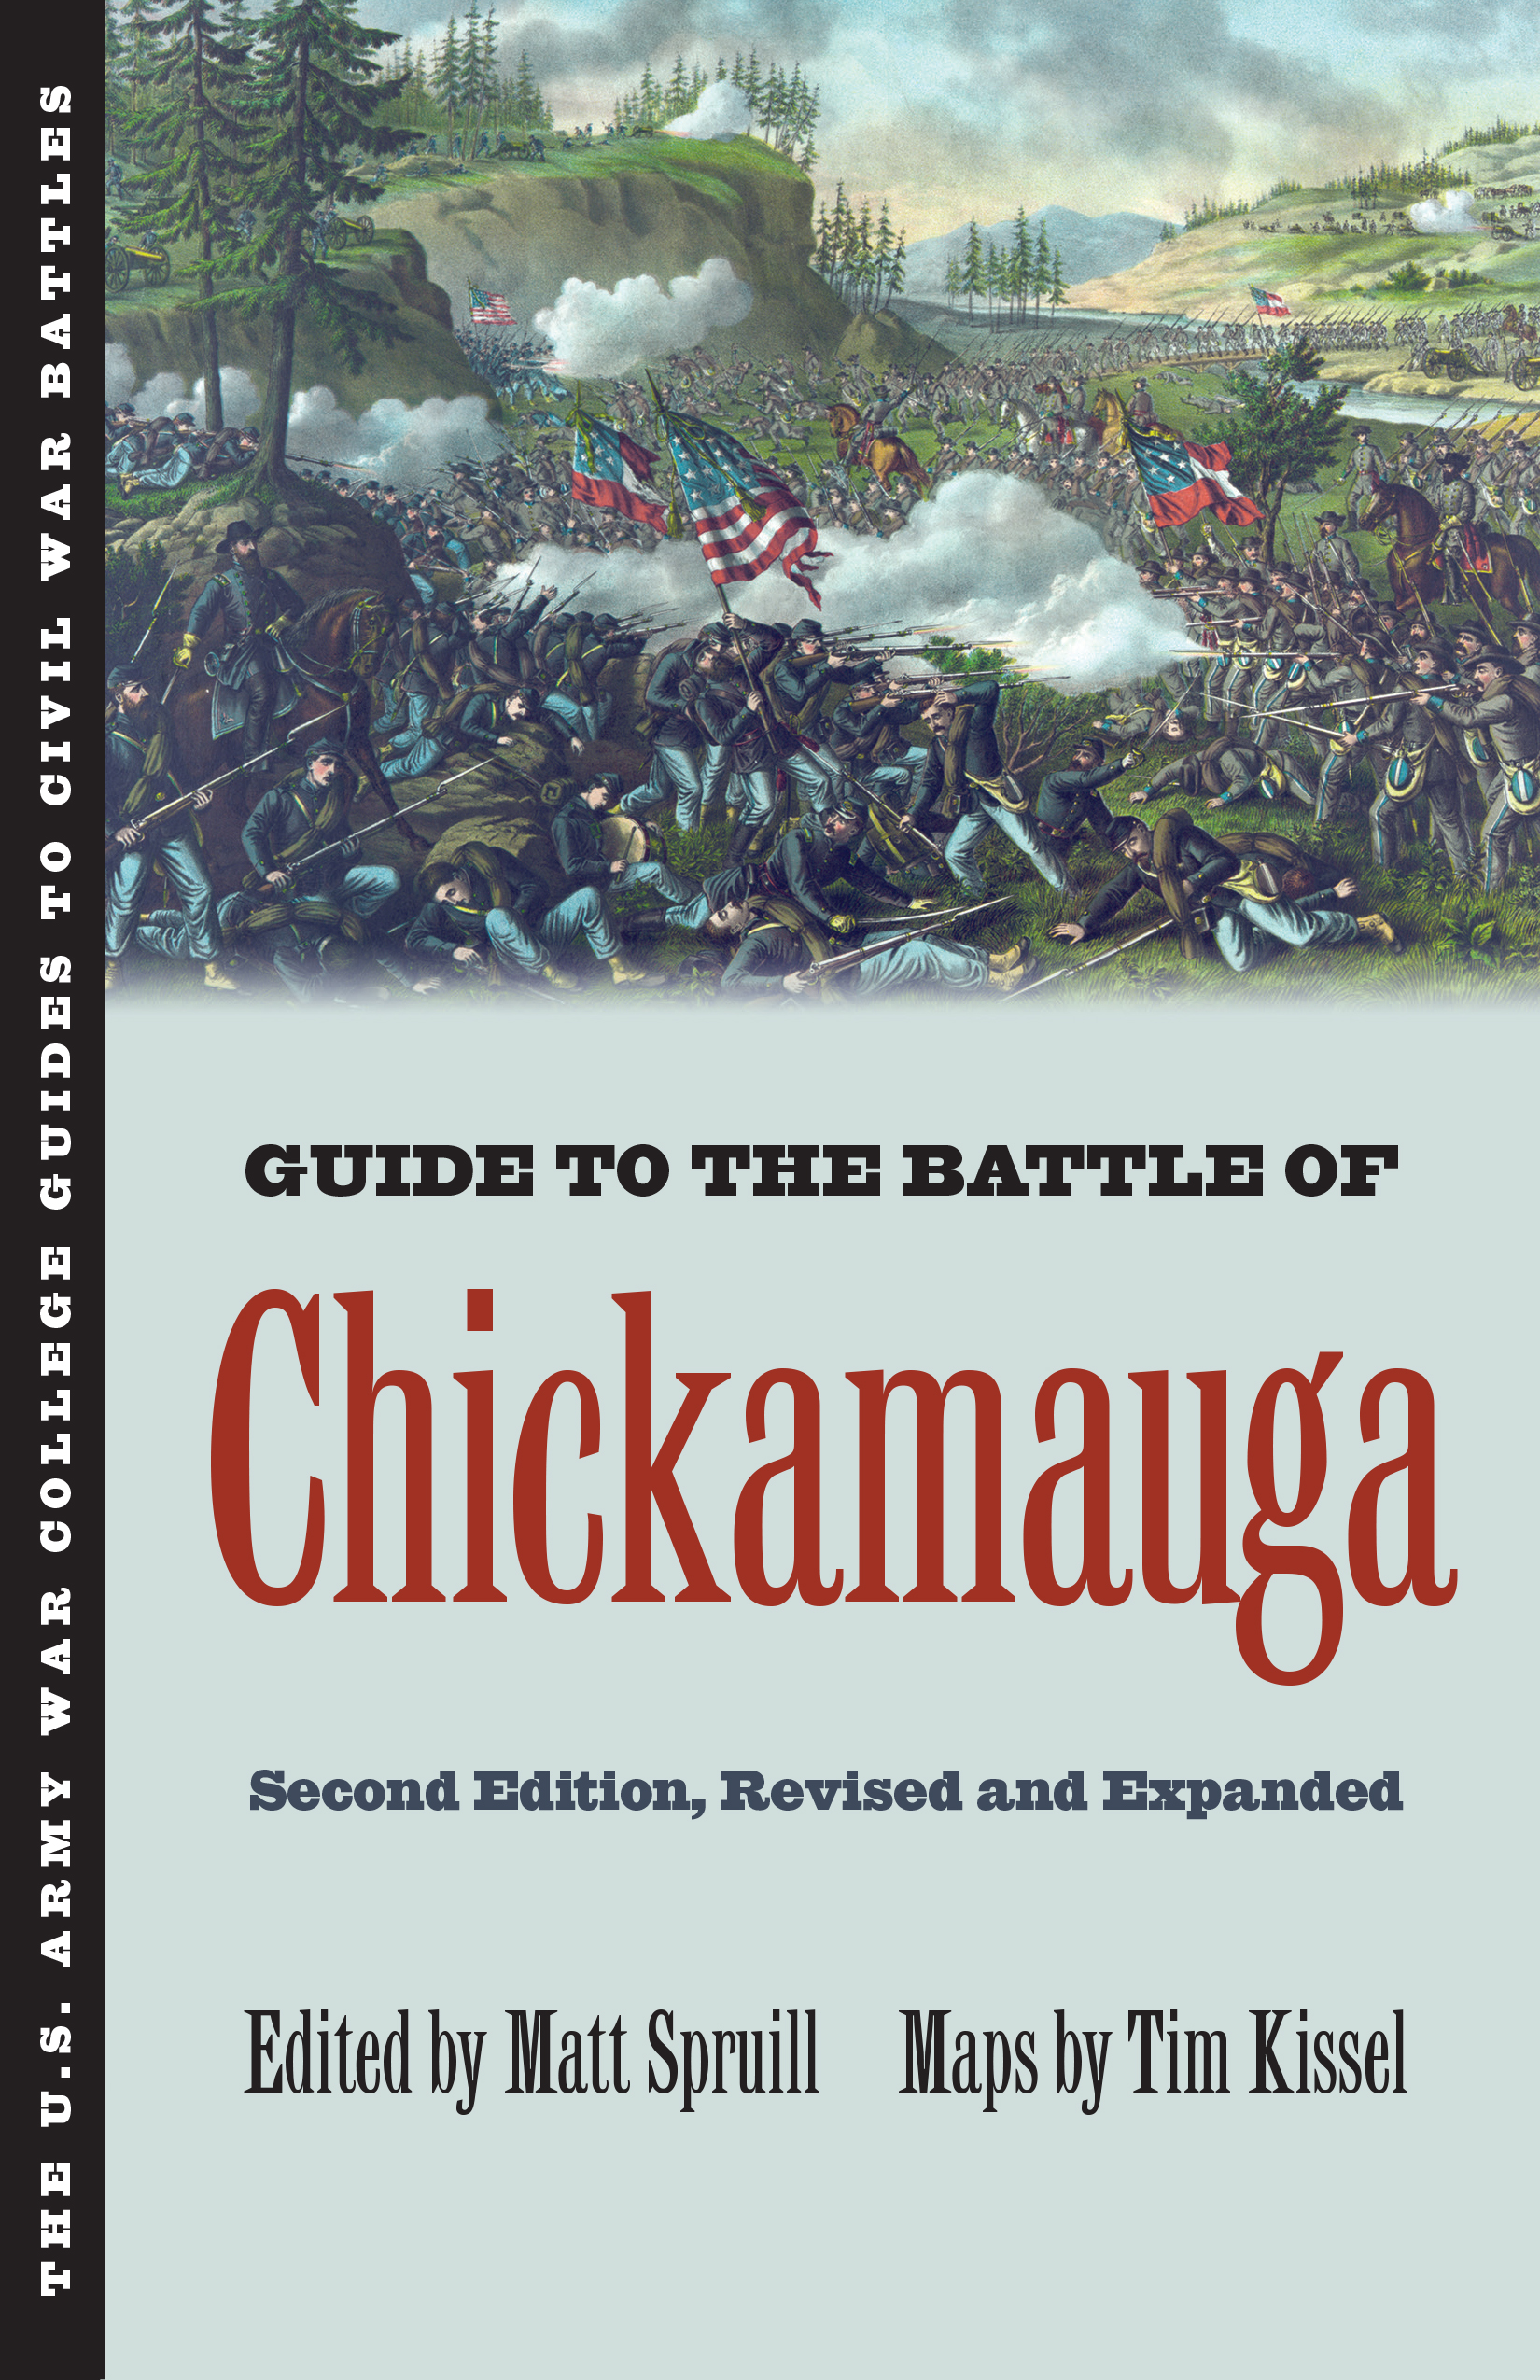 The Greatest Civil War Battles: The Battle of Chickamauga